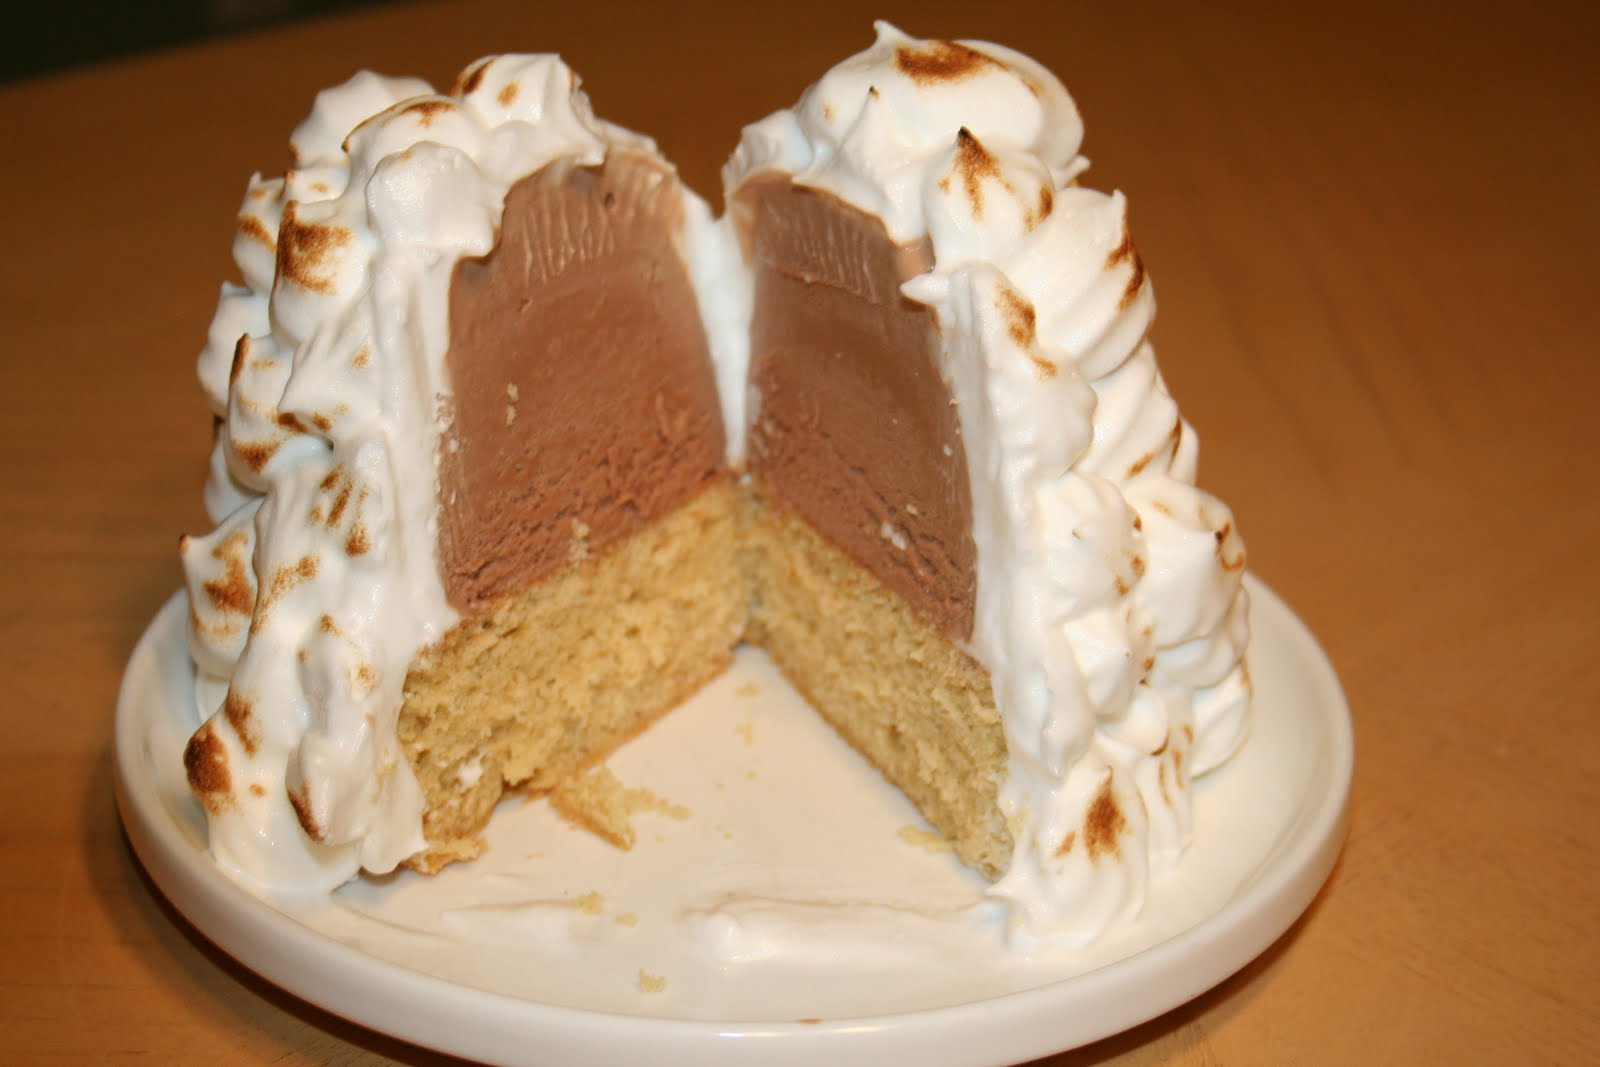 How To Make Baked Alaska Cake